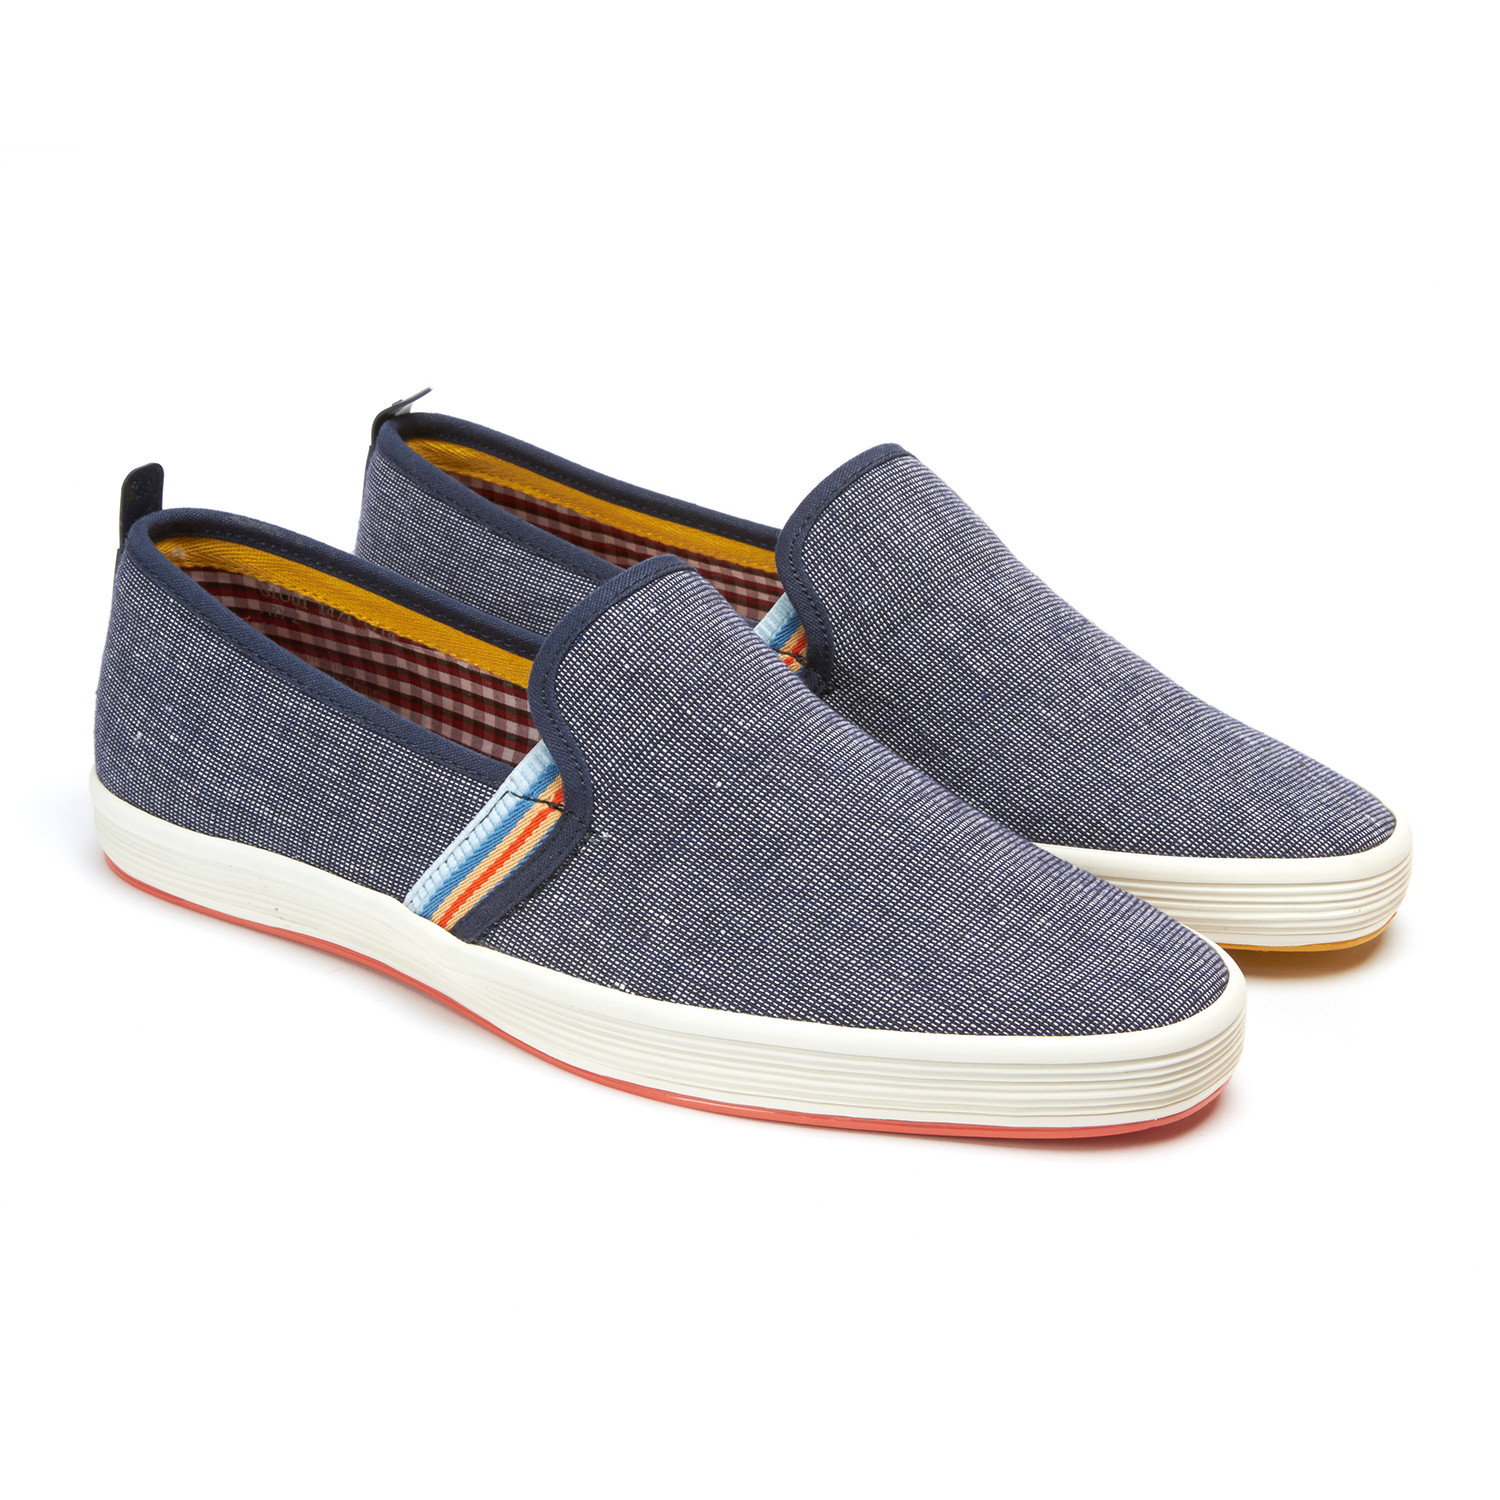 Tartar sneaker navy euro 40 fish n chips for Fish n chips shoes